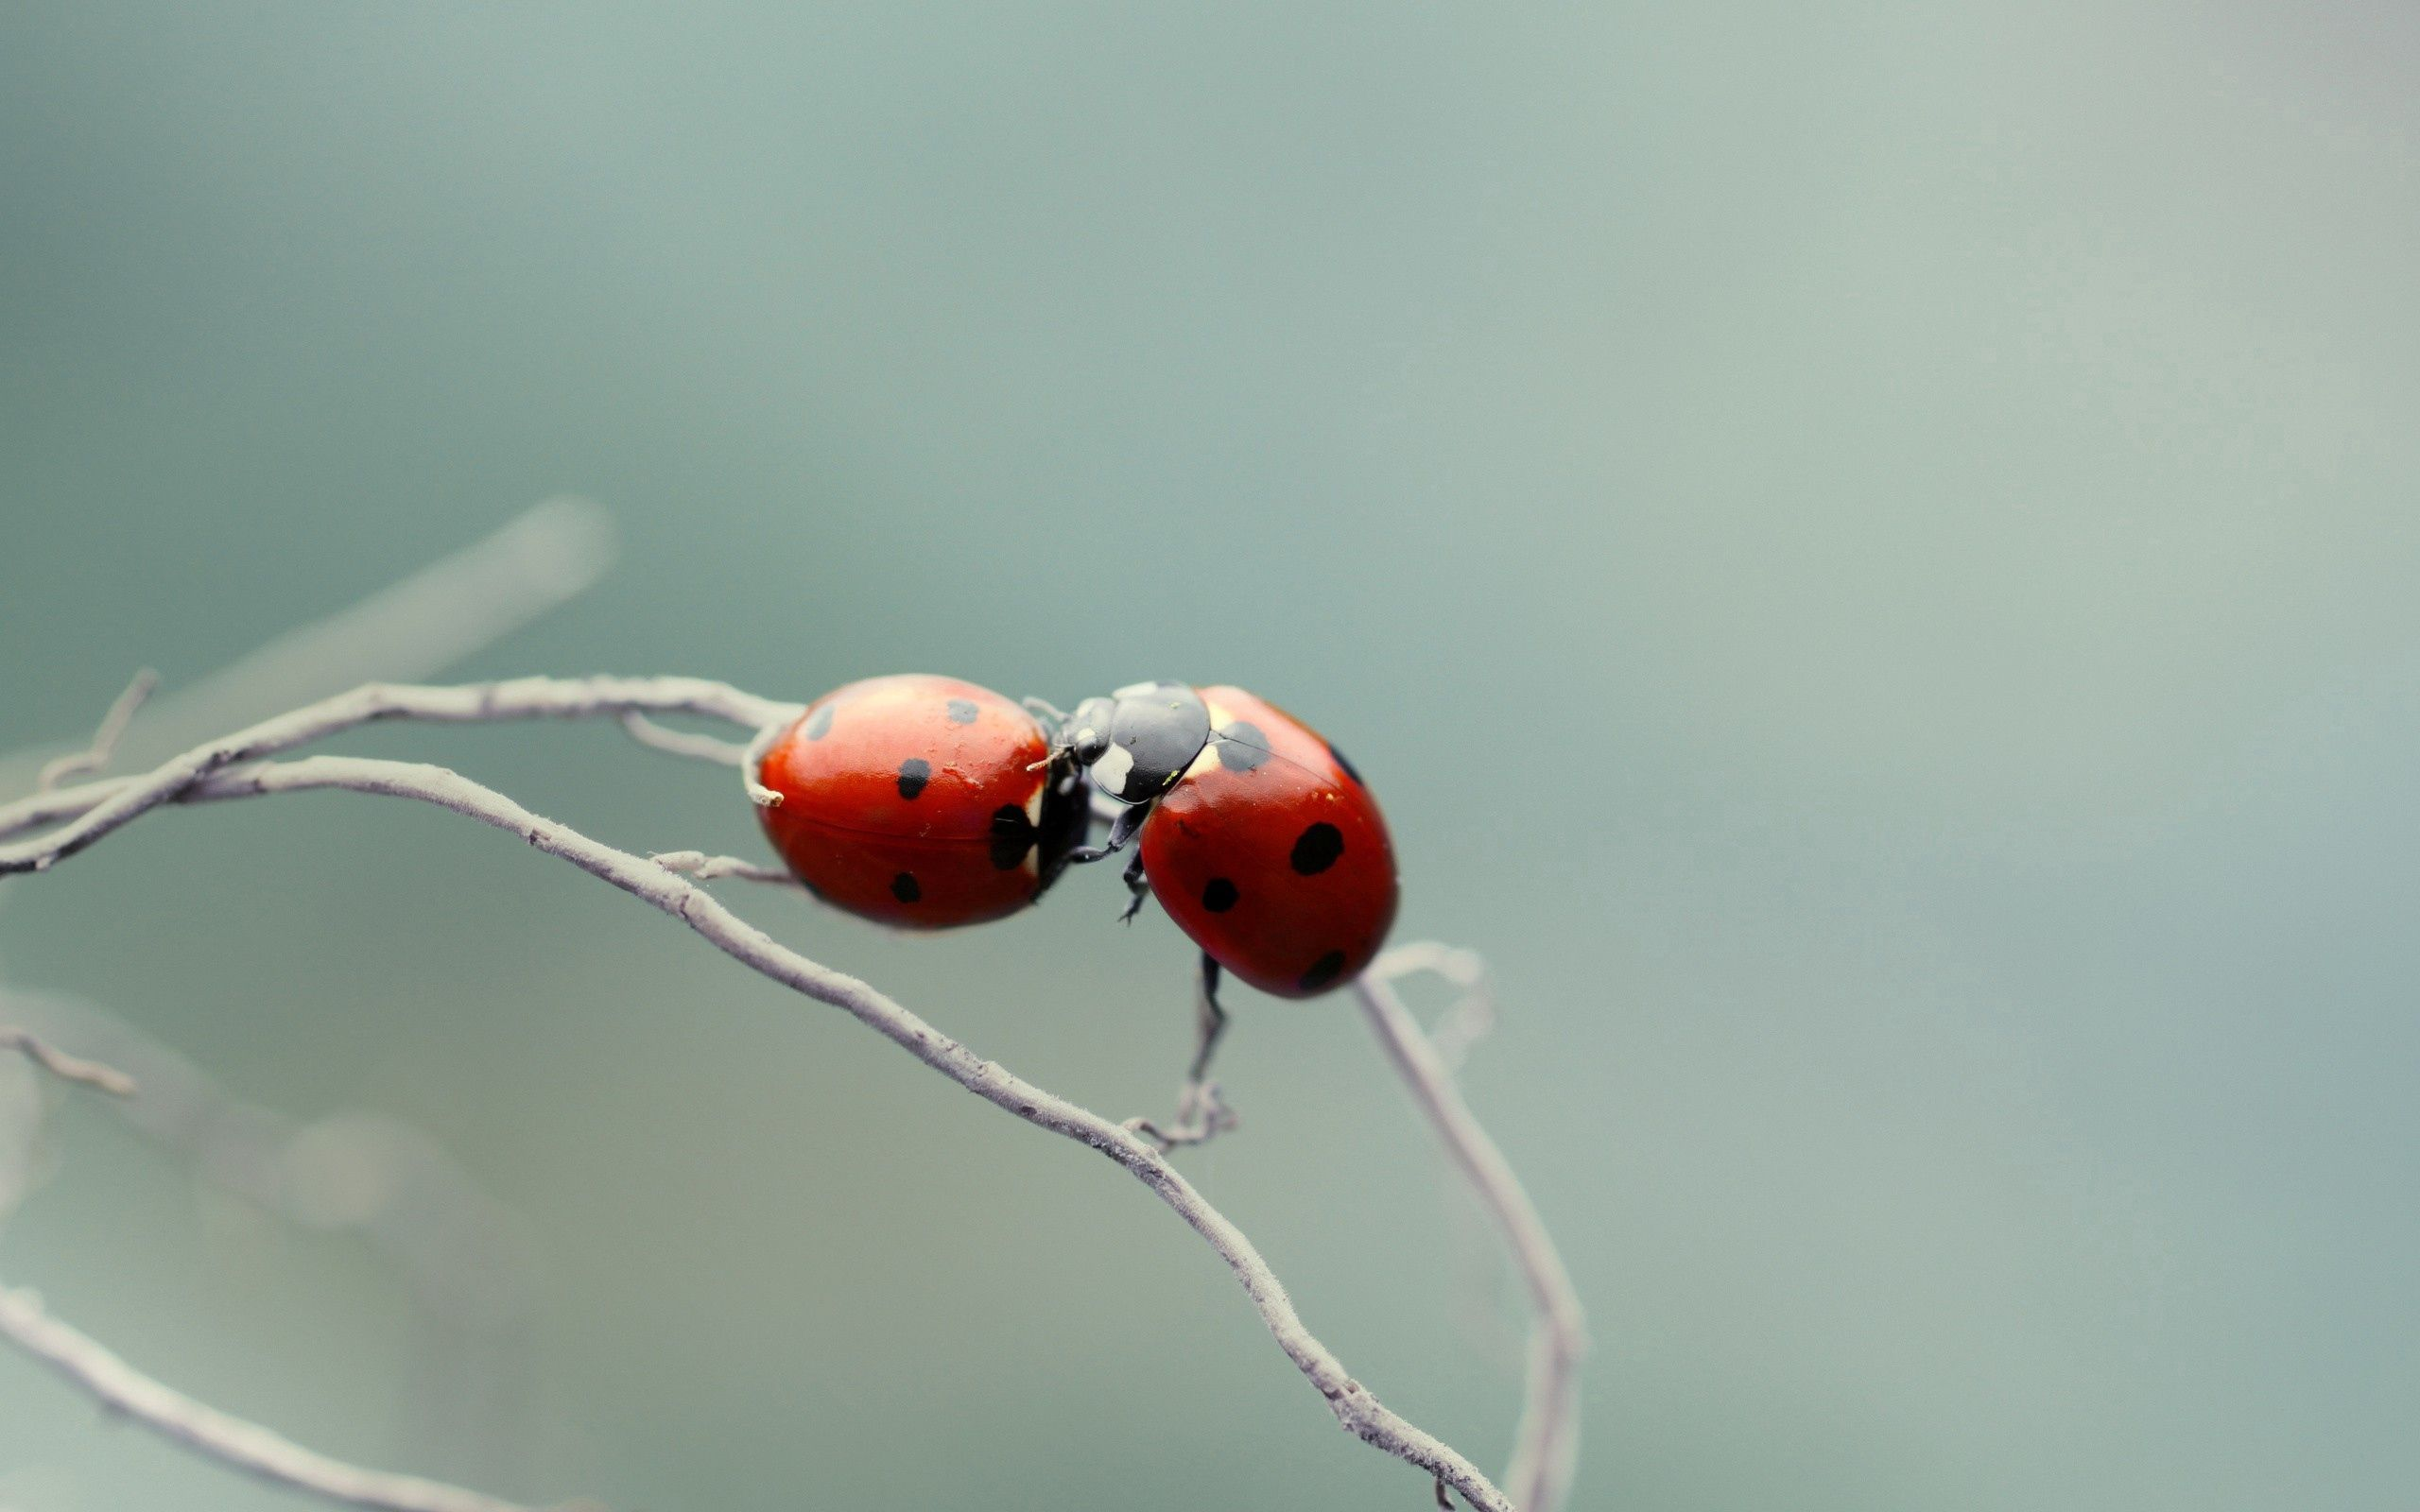 61127 download wallpaper Macro, Ladybug, Ladybird, Couple, Pair, Kiss, Plant, Branch screensavers and pictures for free